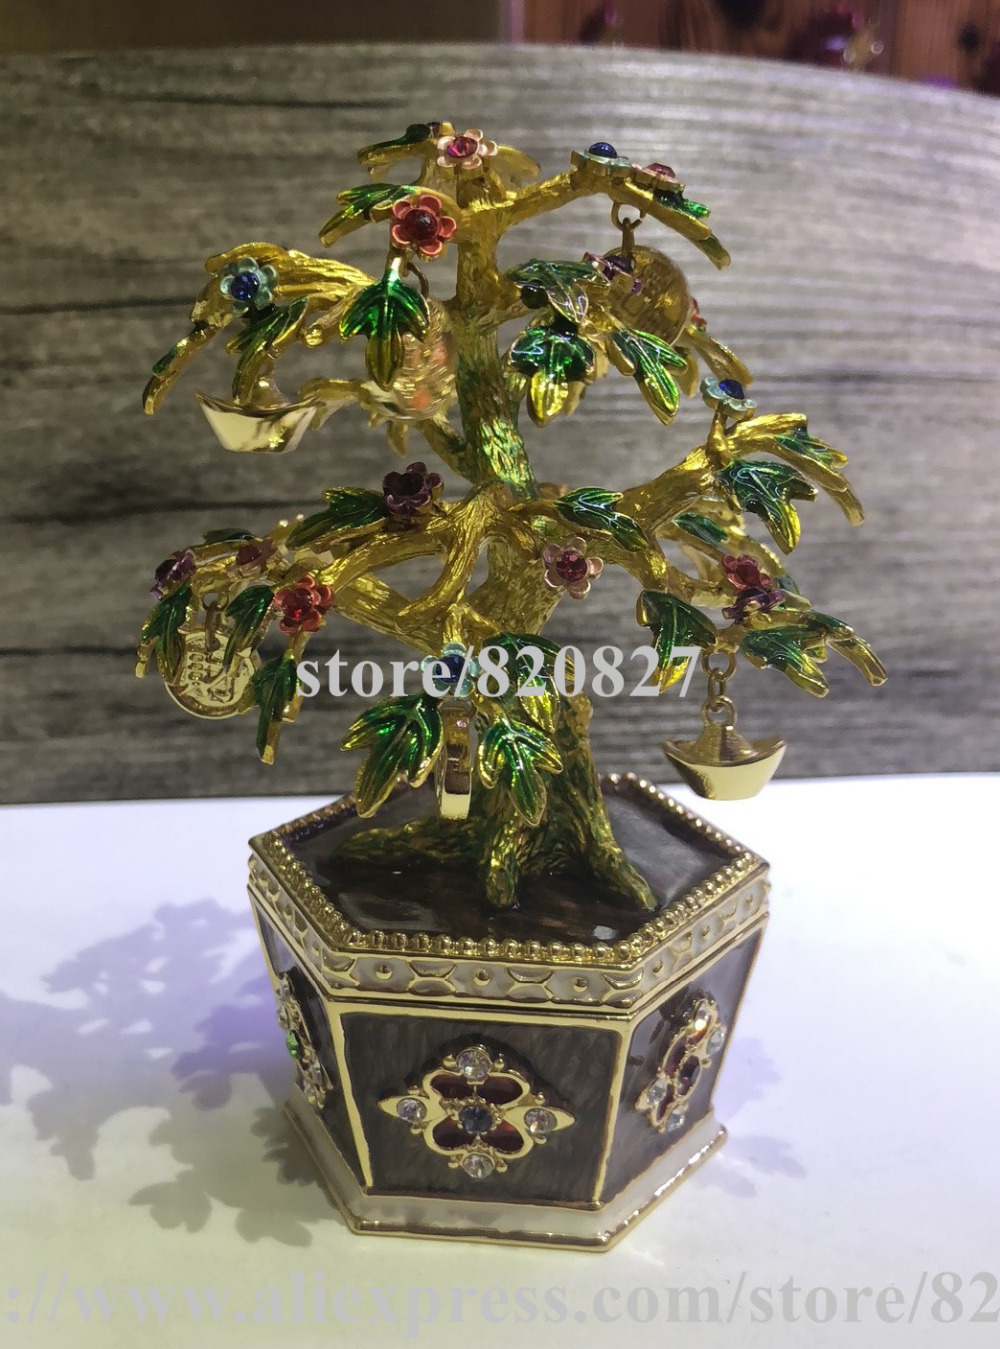 Bonsai Blossom Tree Trinket Box Source Money Tree Treasure Box with Coins & Gold Ingot Fengshui Fortune Bring Tree Statue Gift 8 chinese fengshui bronze copper five way mammon gold ingot snake wealth statue sd 506